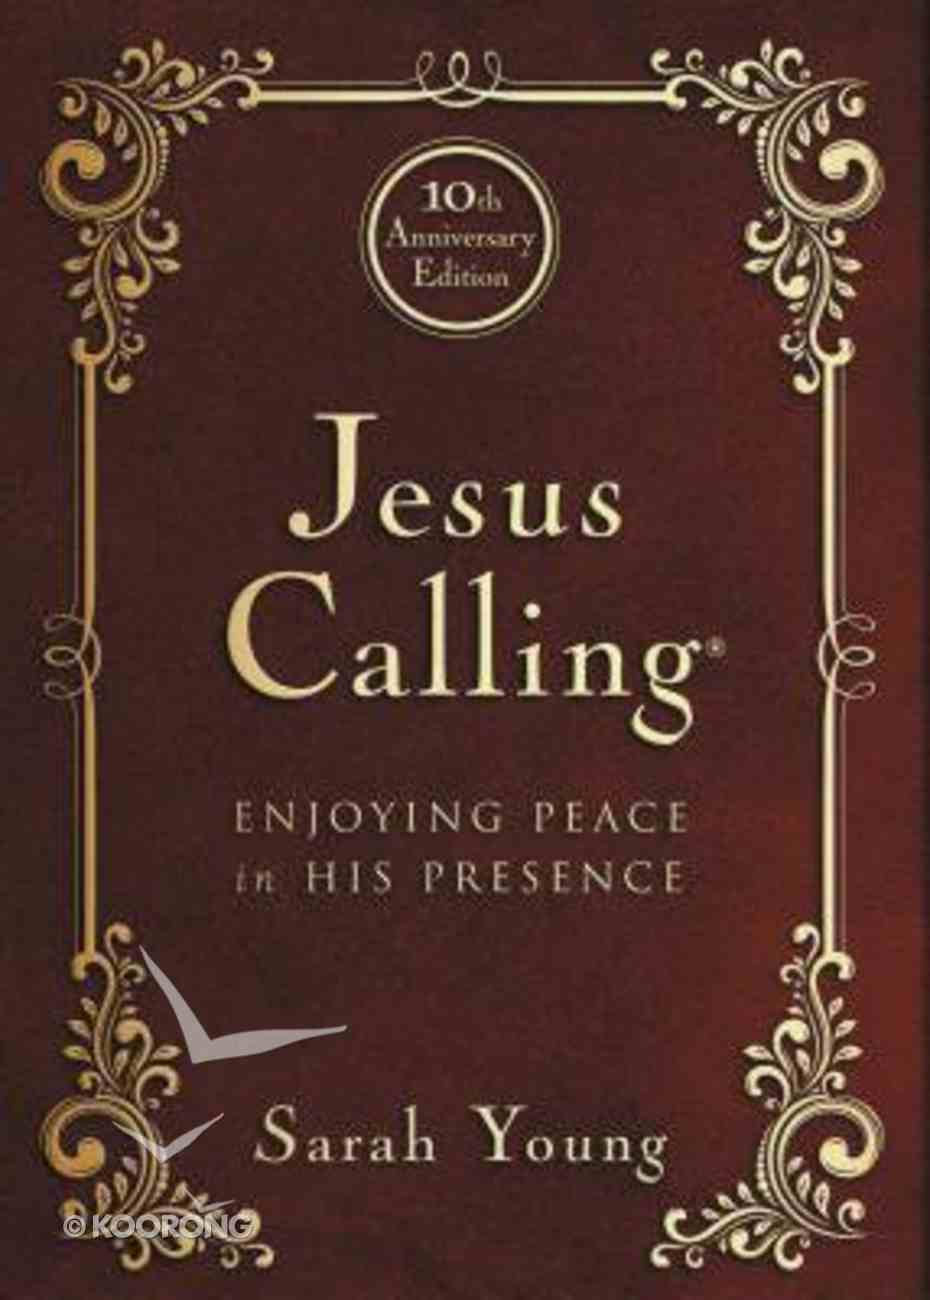 Jesus Calling (10th Anniversary Expanded Edition) Bonded Leather